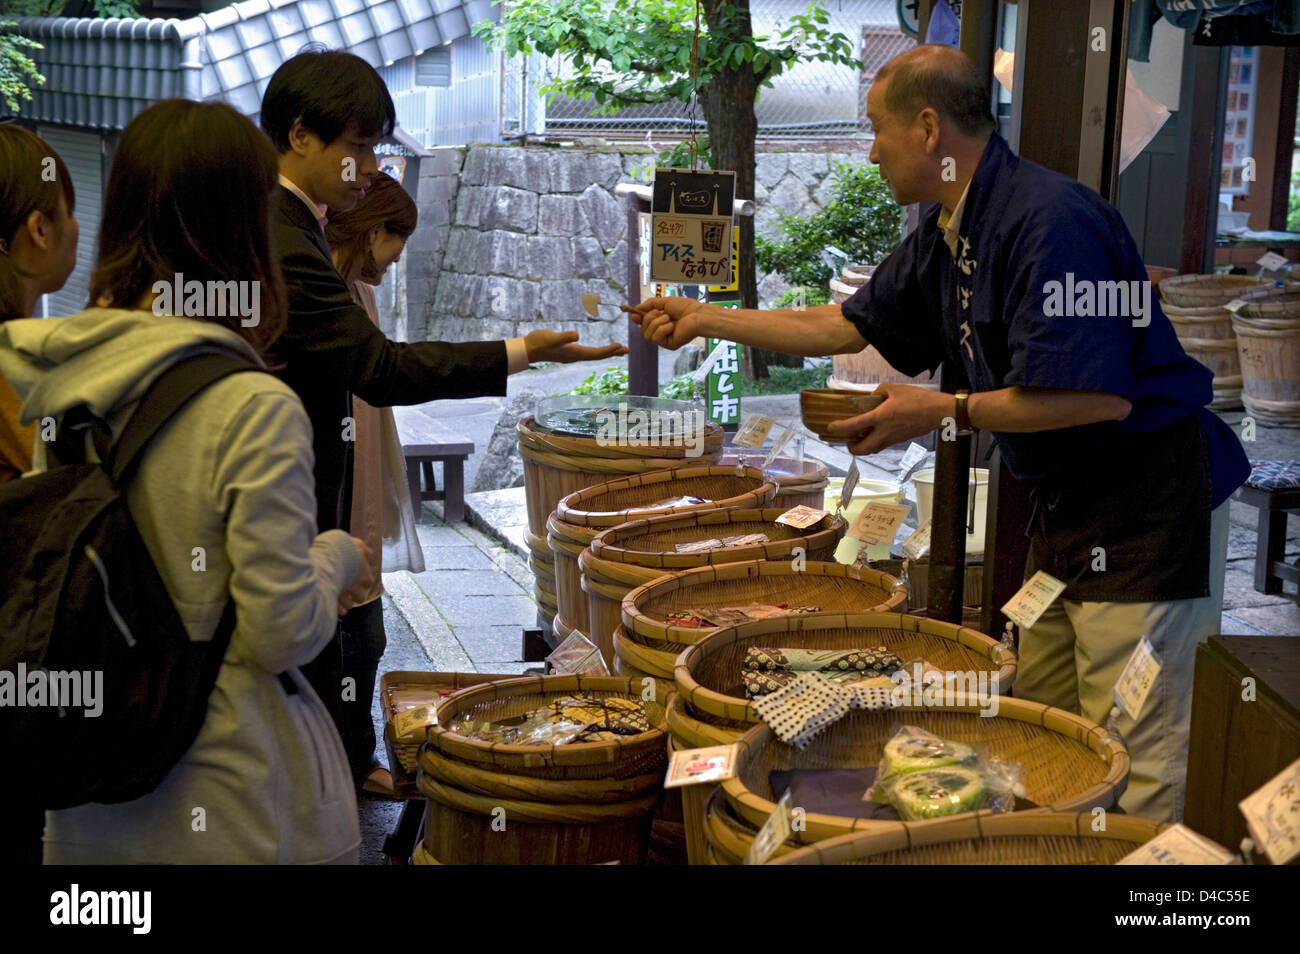 Visitors to rural countryside village of Ohara, Kyoto stop by a local otsukemono (pickled vegetables) shop for a - Stock Image